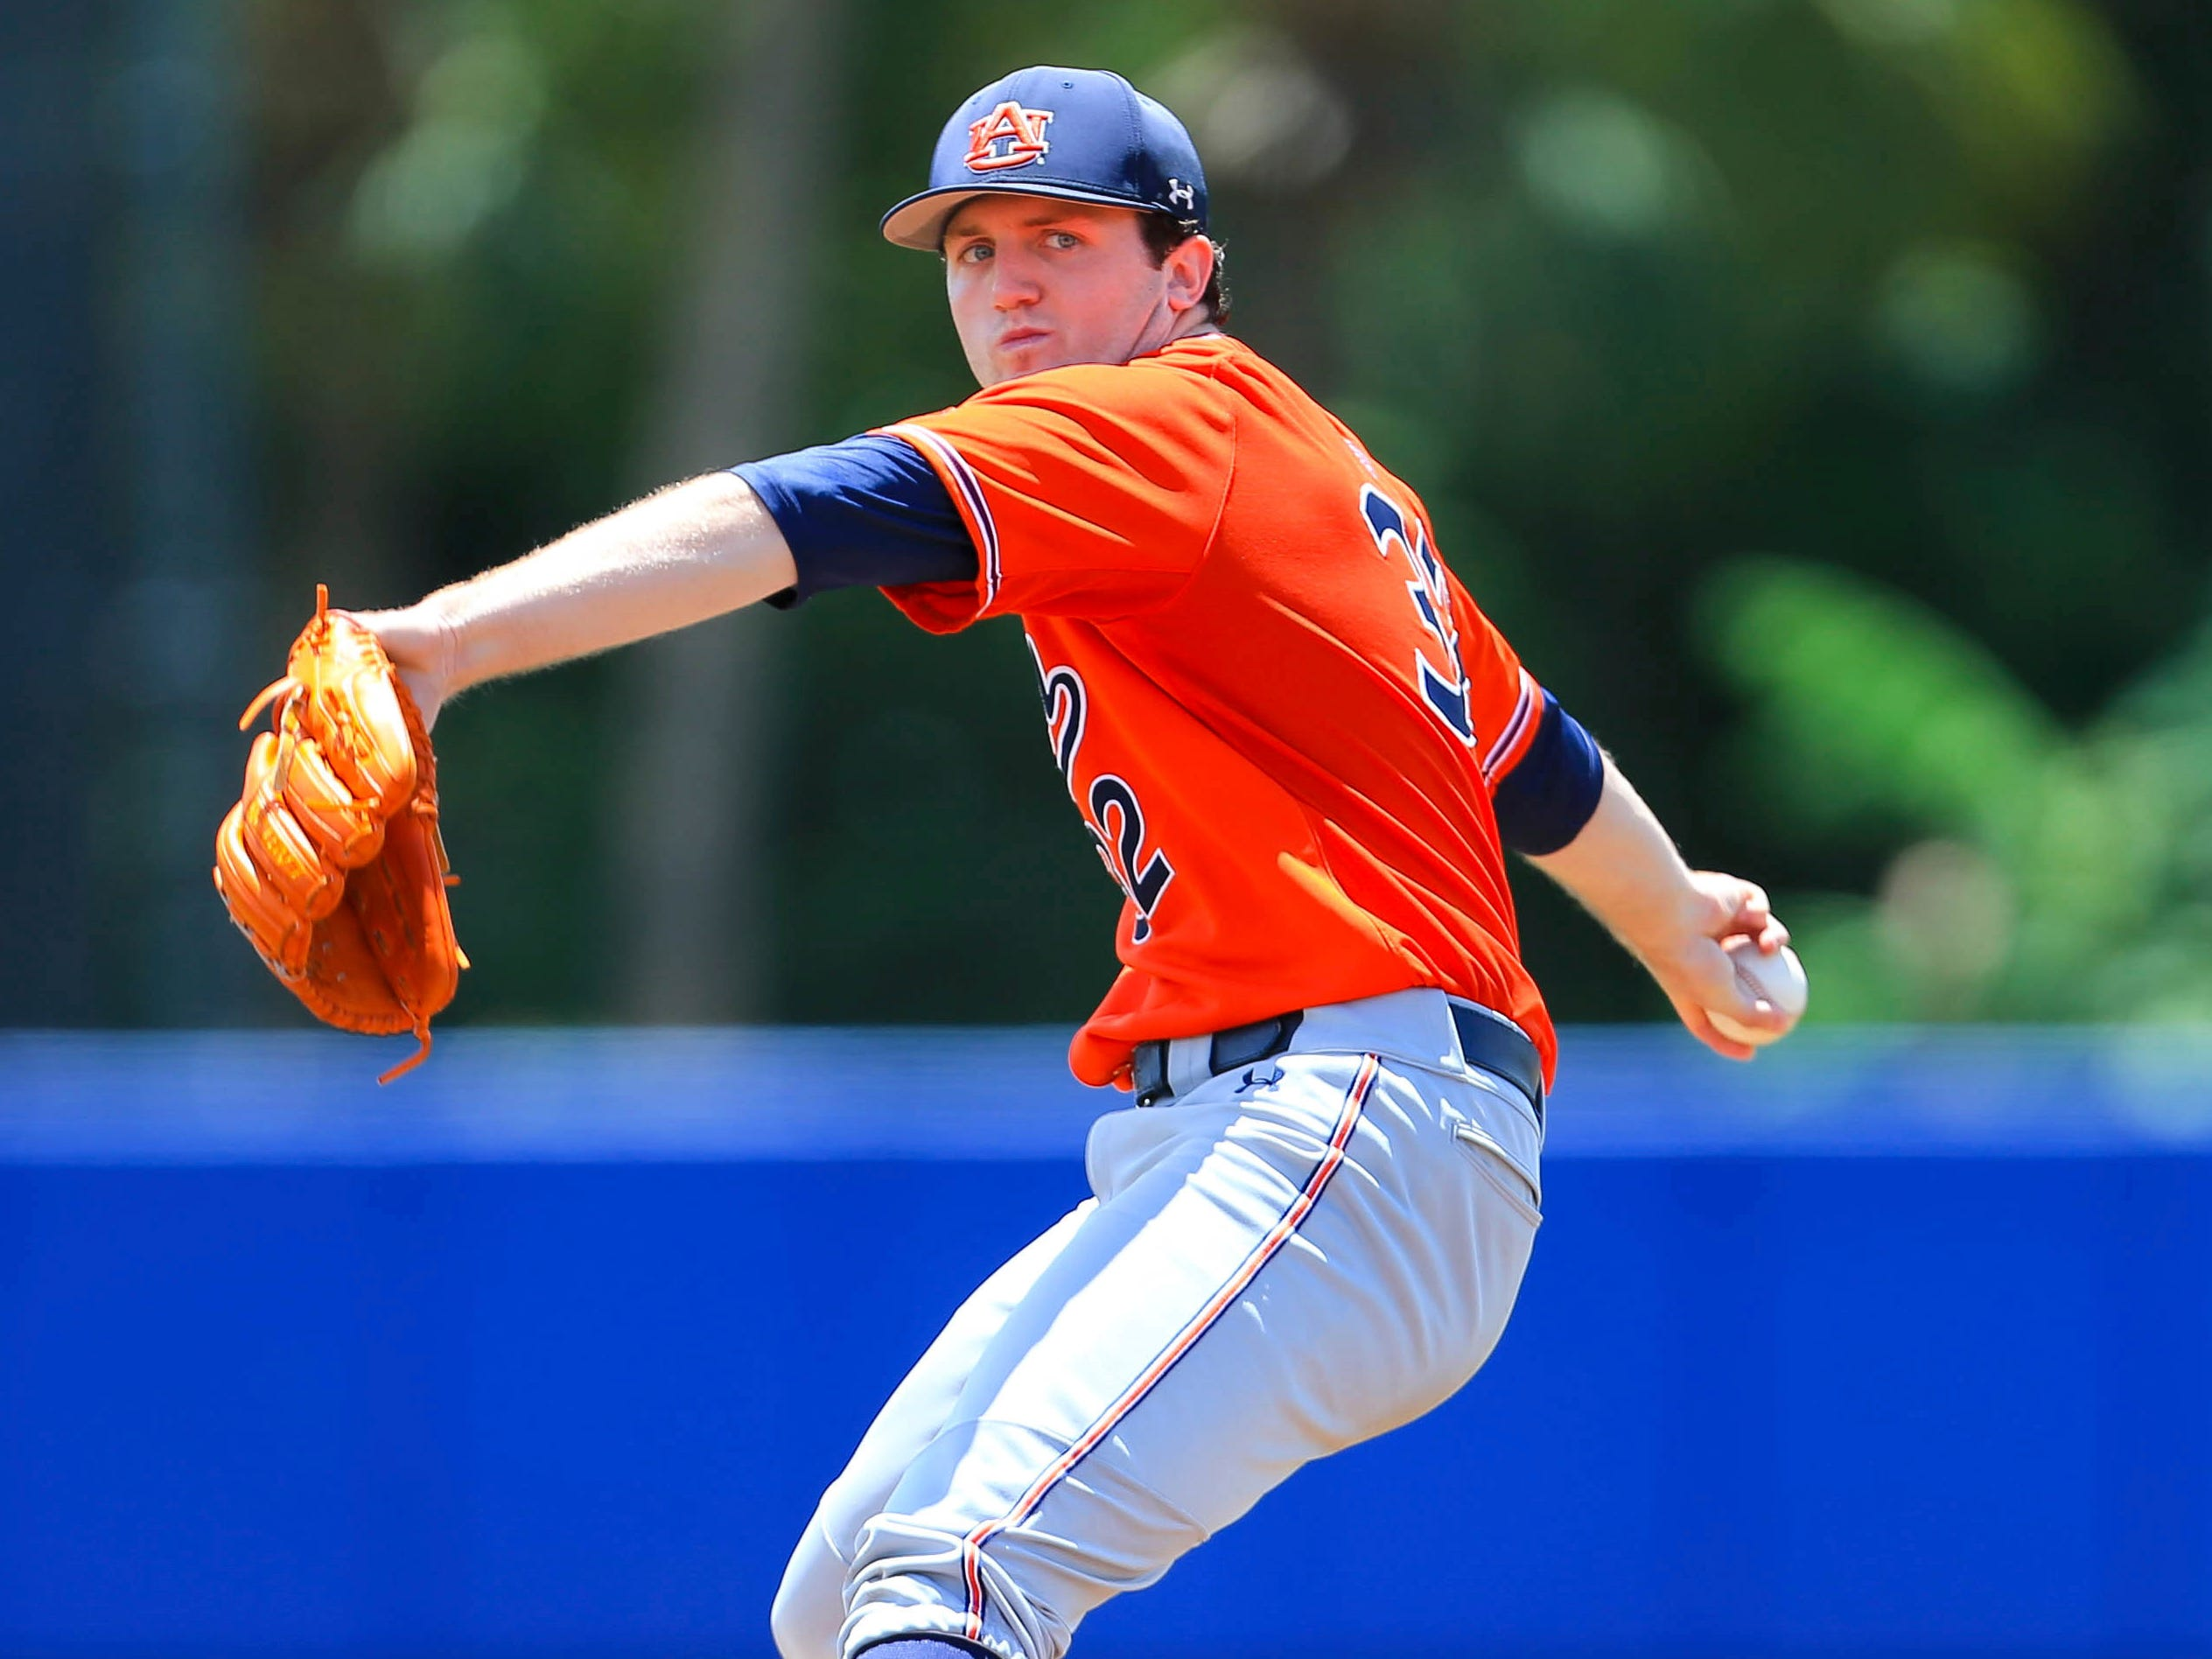 Tigers' Casey Mize is MLB Pipeline's No. 2 right-handed pitching prospect